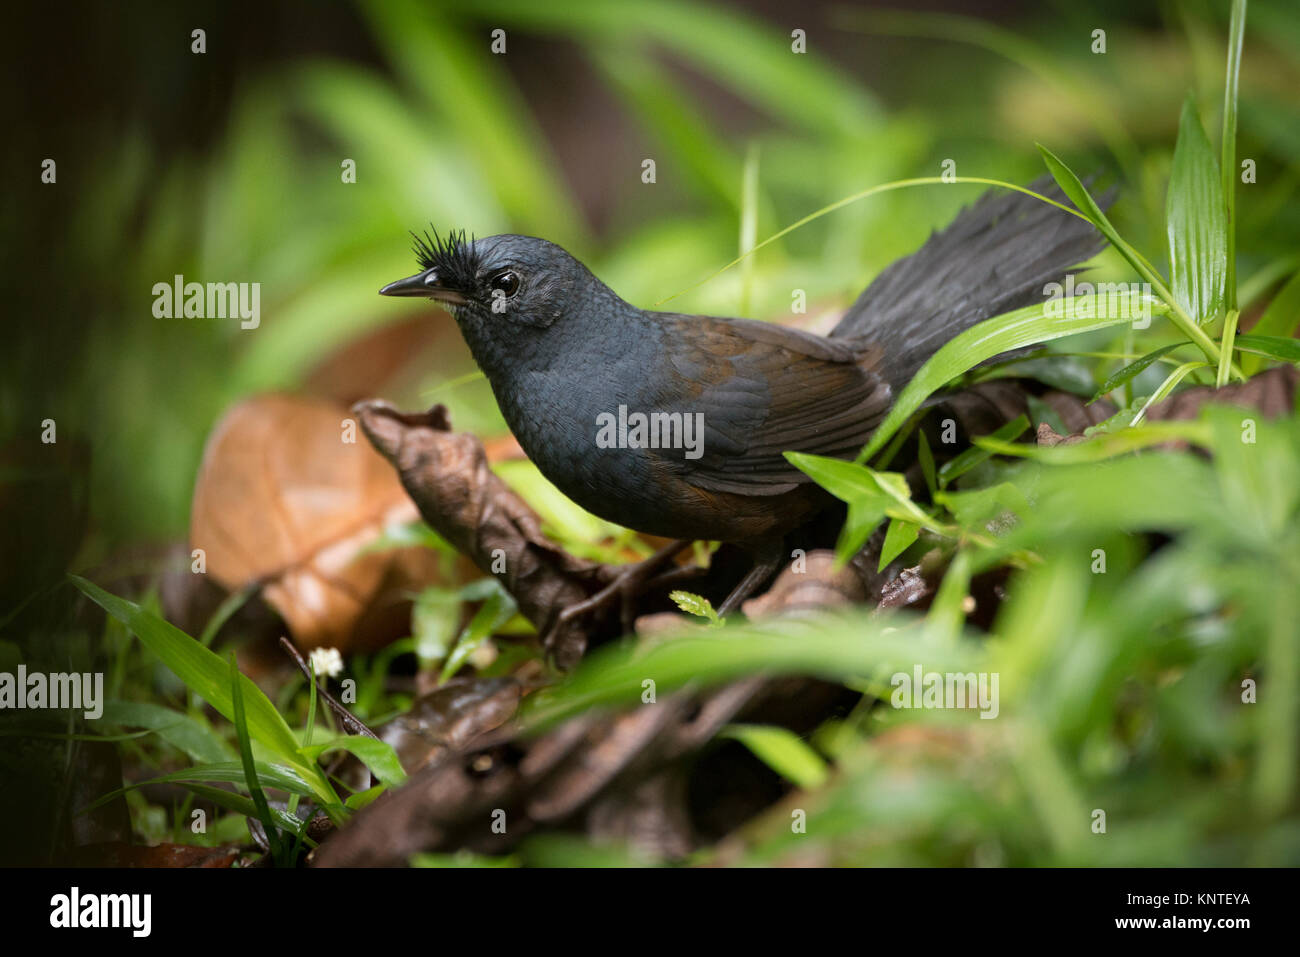 A Slaty Bristflefront (Merulaxis ater) at the ground of the Atlantic Rainforest of SE Brazil - Stock Image